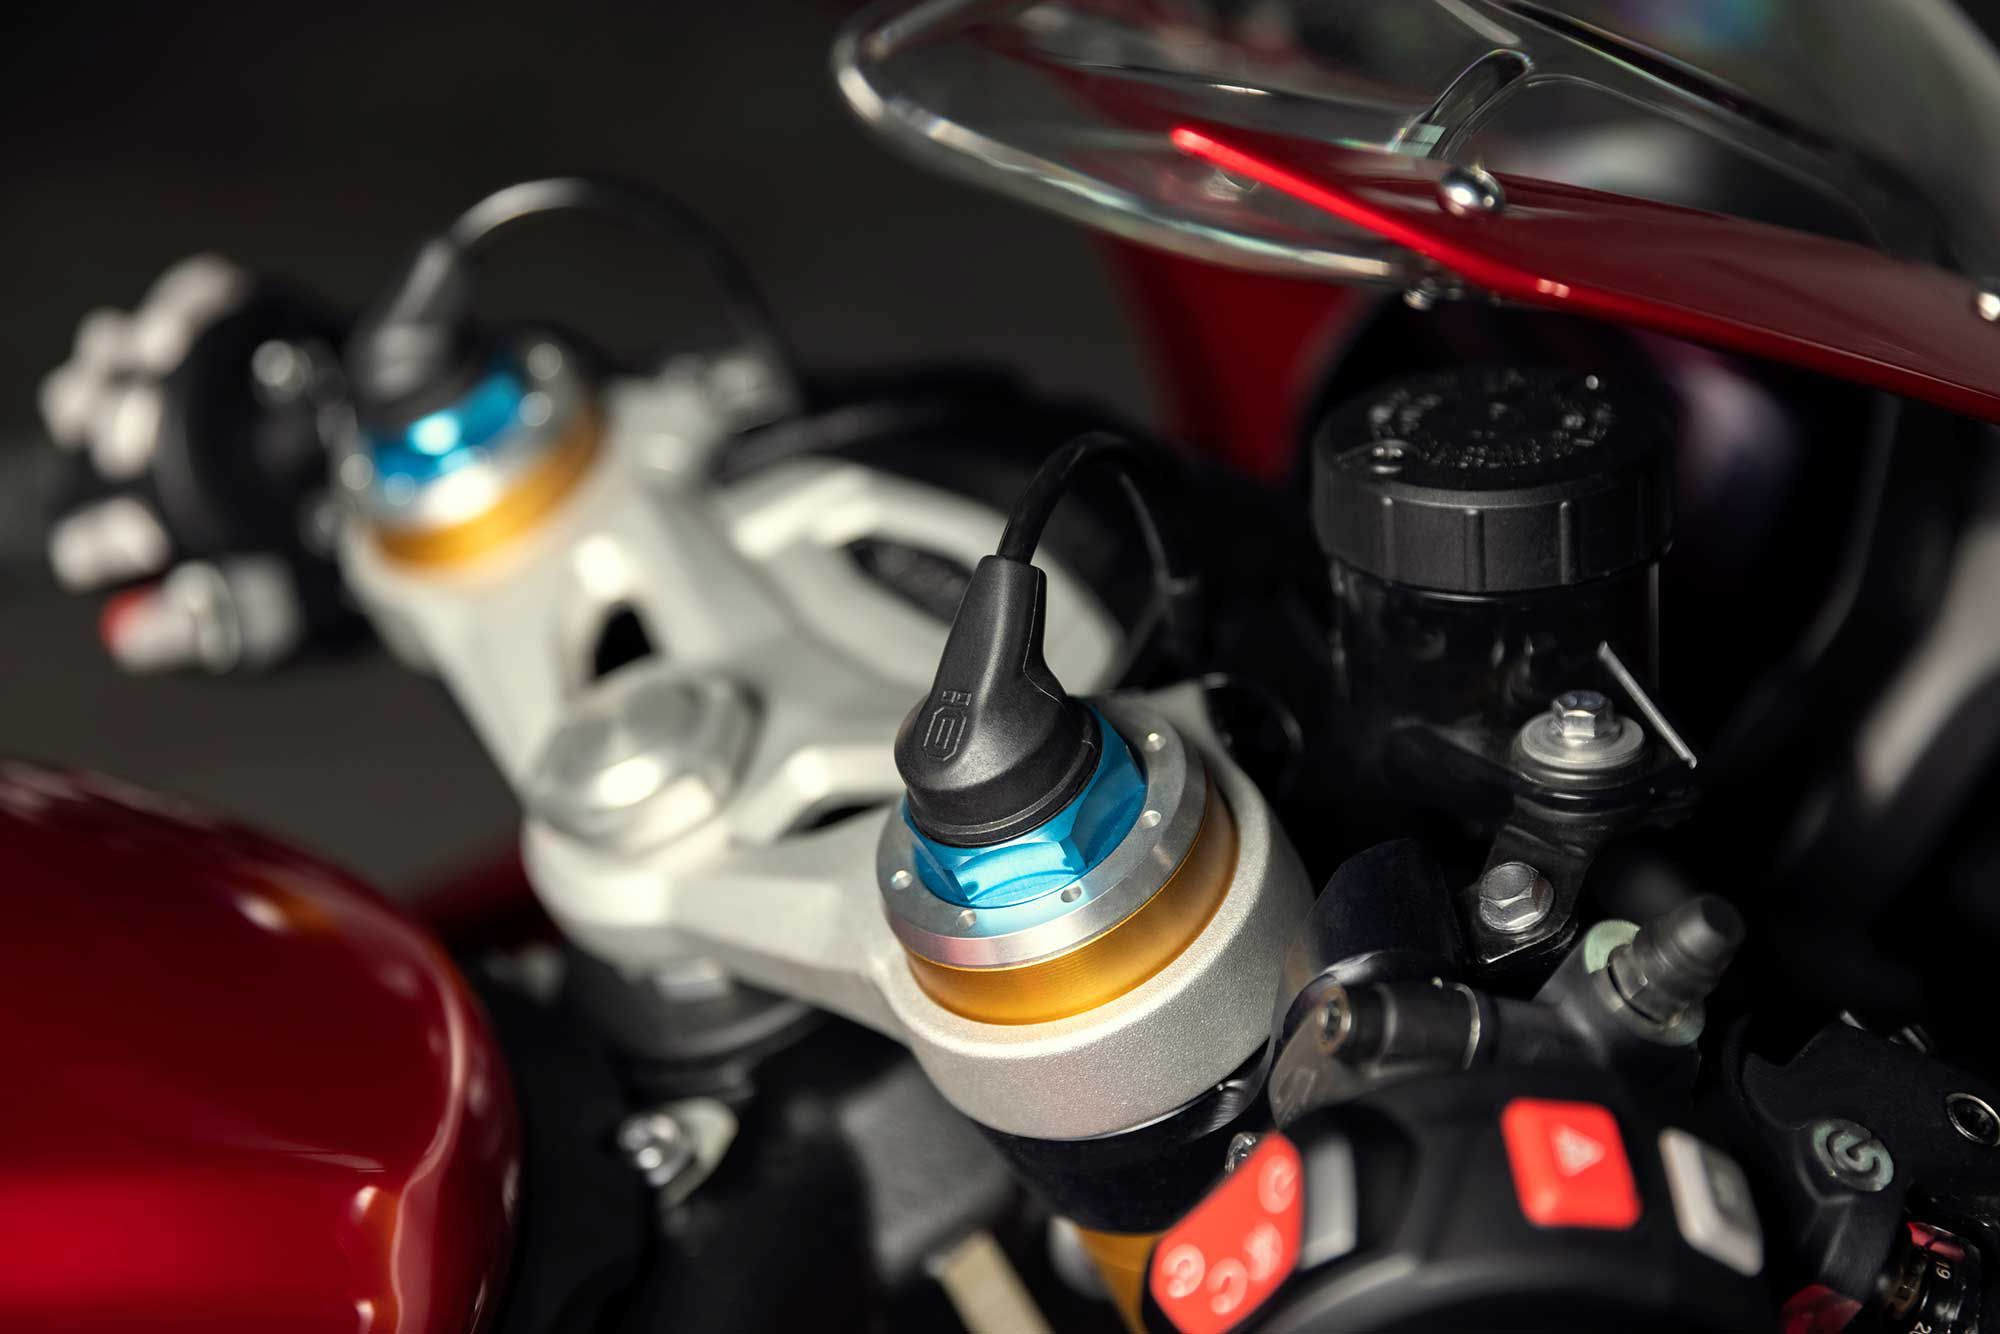 Fully adjustable, electronic Öhlins suspension is one of the major enhancements on the RR.